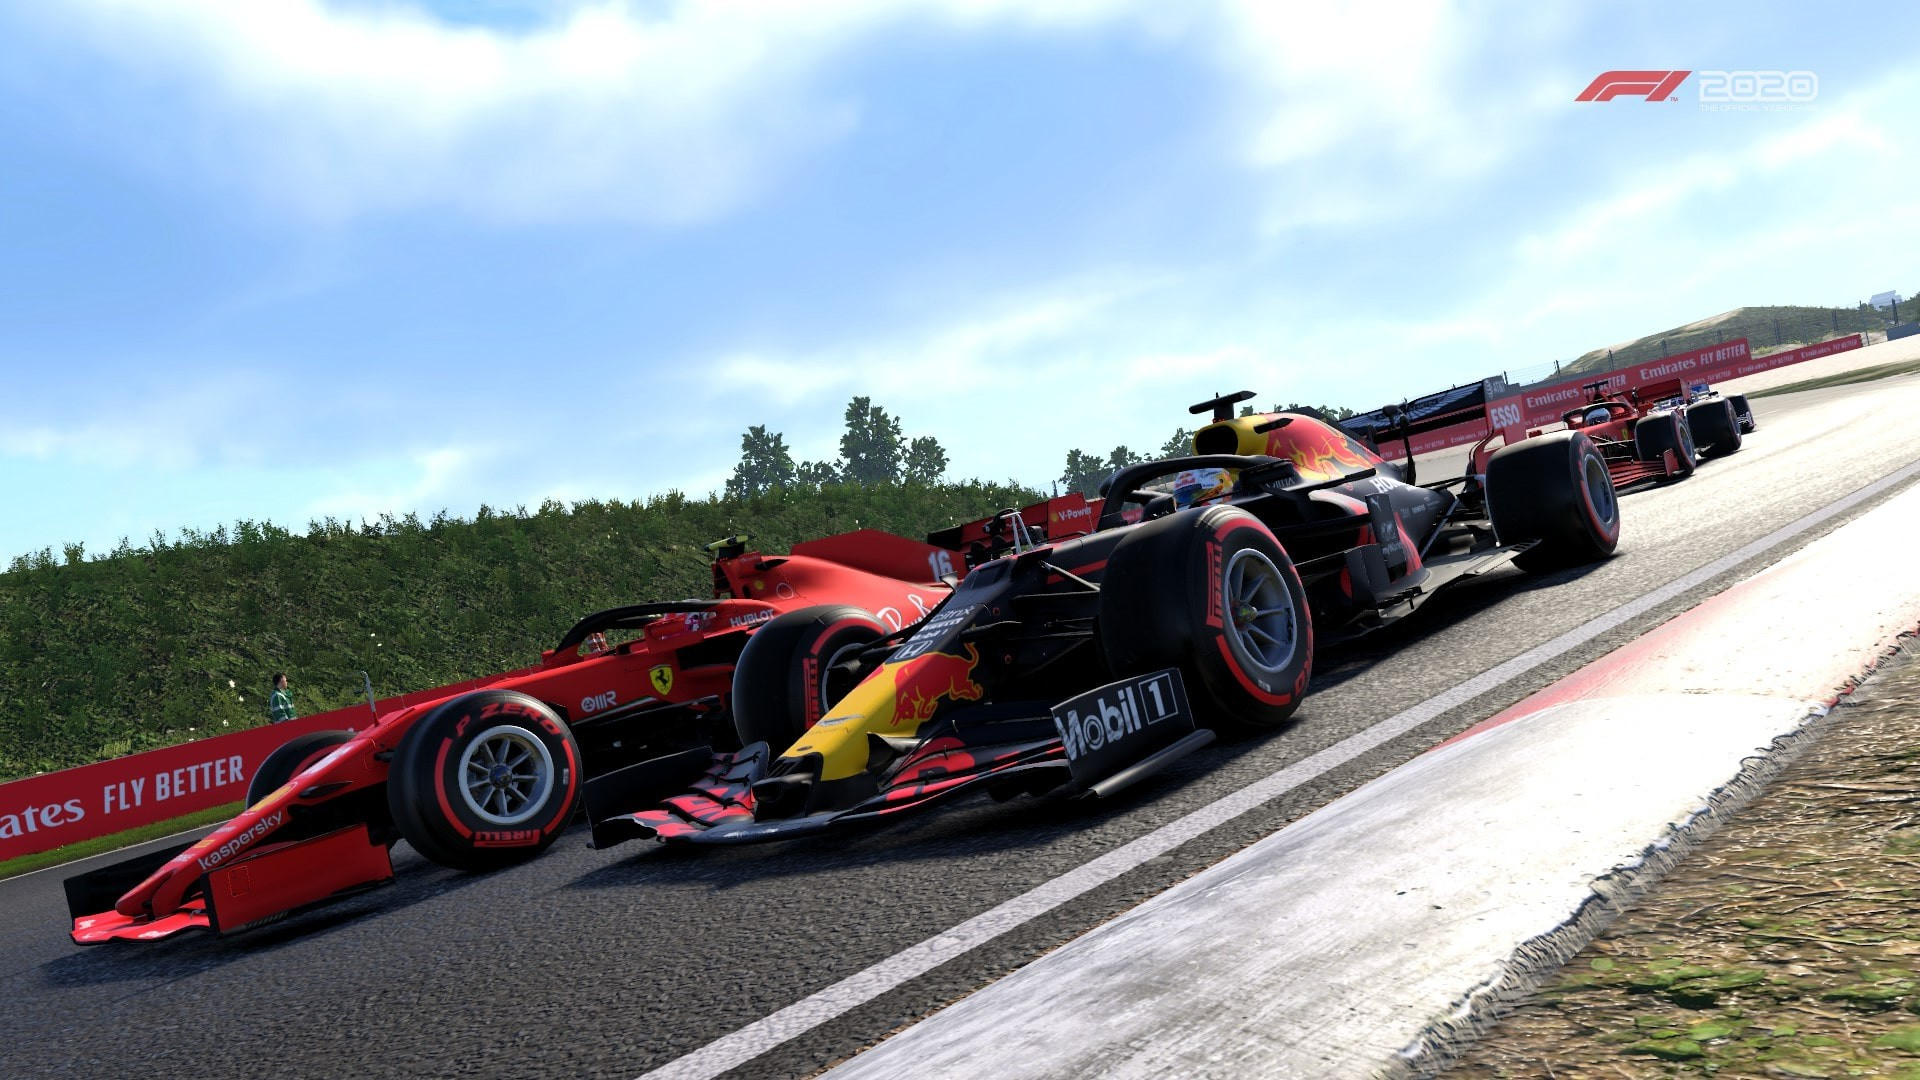 An image of Max Verstappen's Red Bull alongside the Ferrari of Charles Leclerc at Zandvoort in F1 2020.